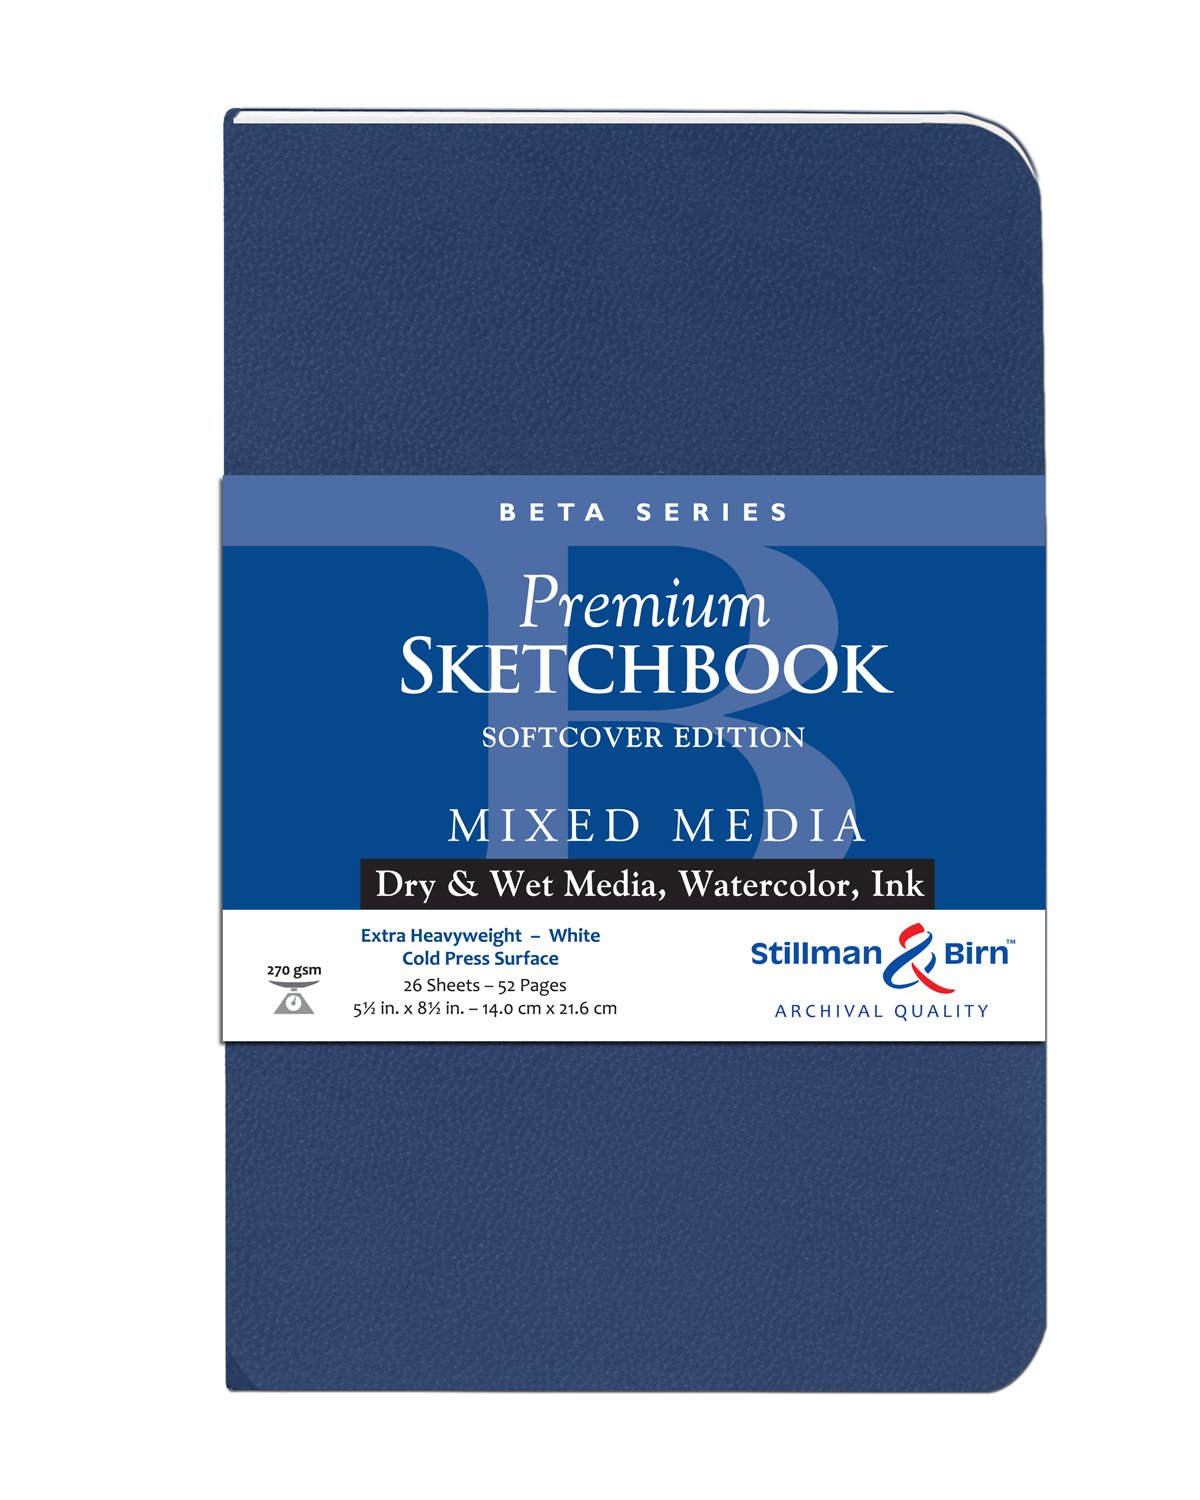 Beta Softcover Sketchbook 5.5X8.5 MACPHERSON 301580P